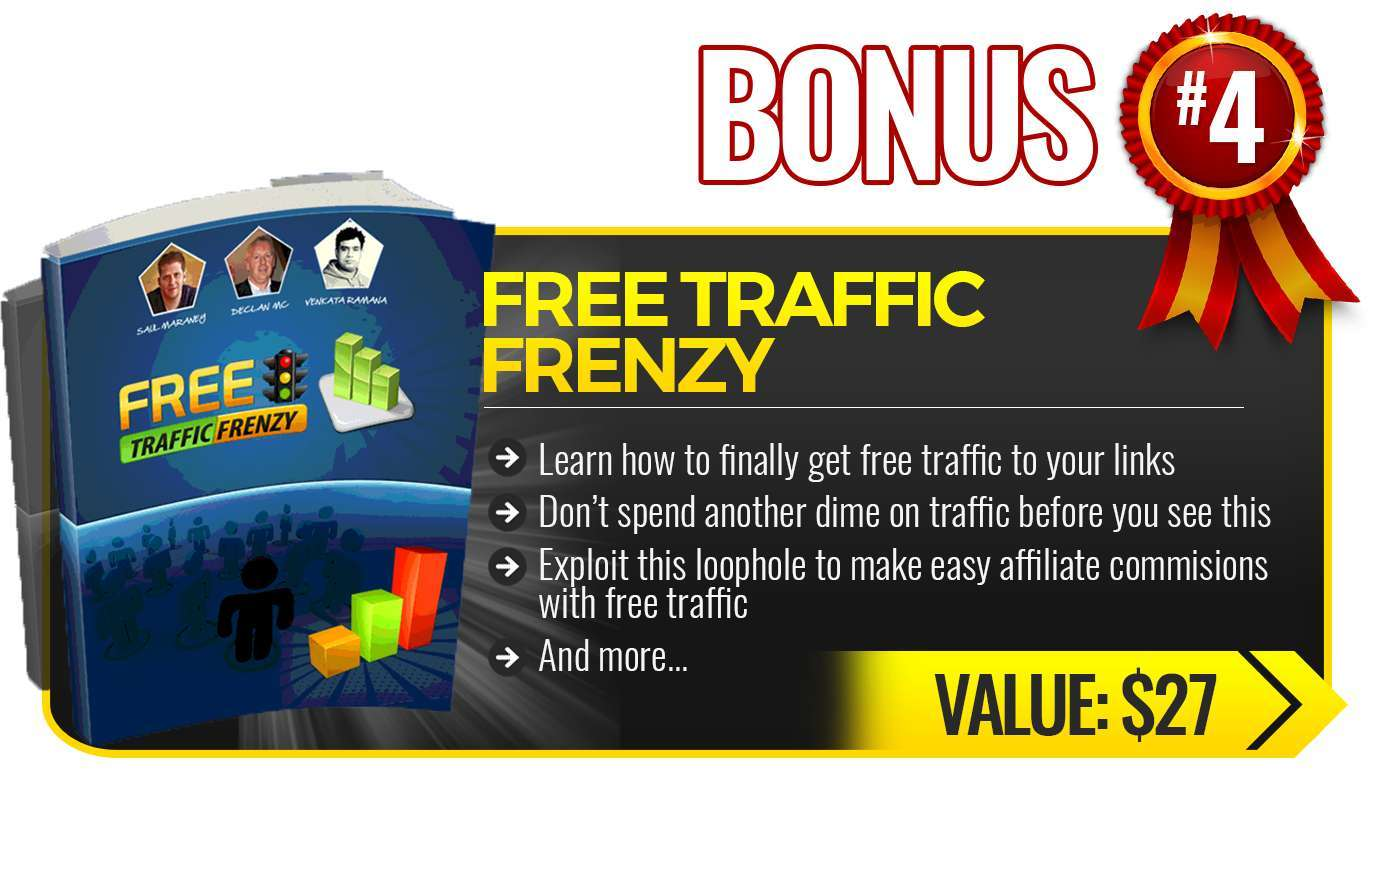 Free Traffic Frenzy bonus4